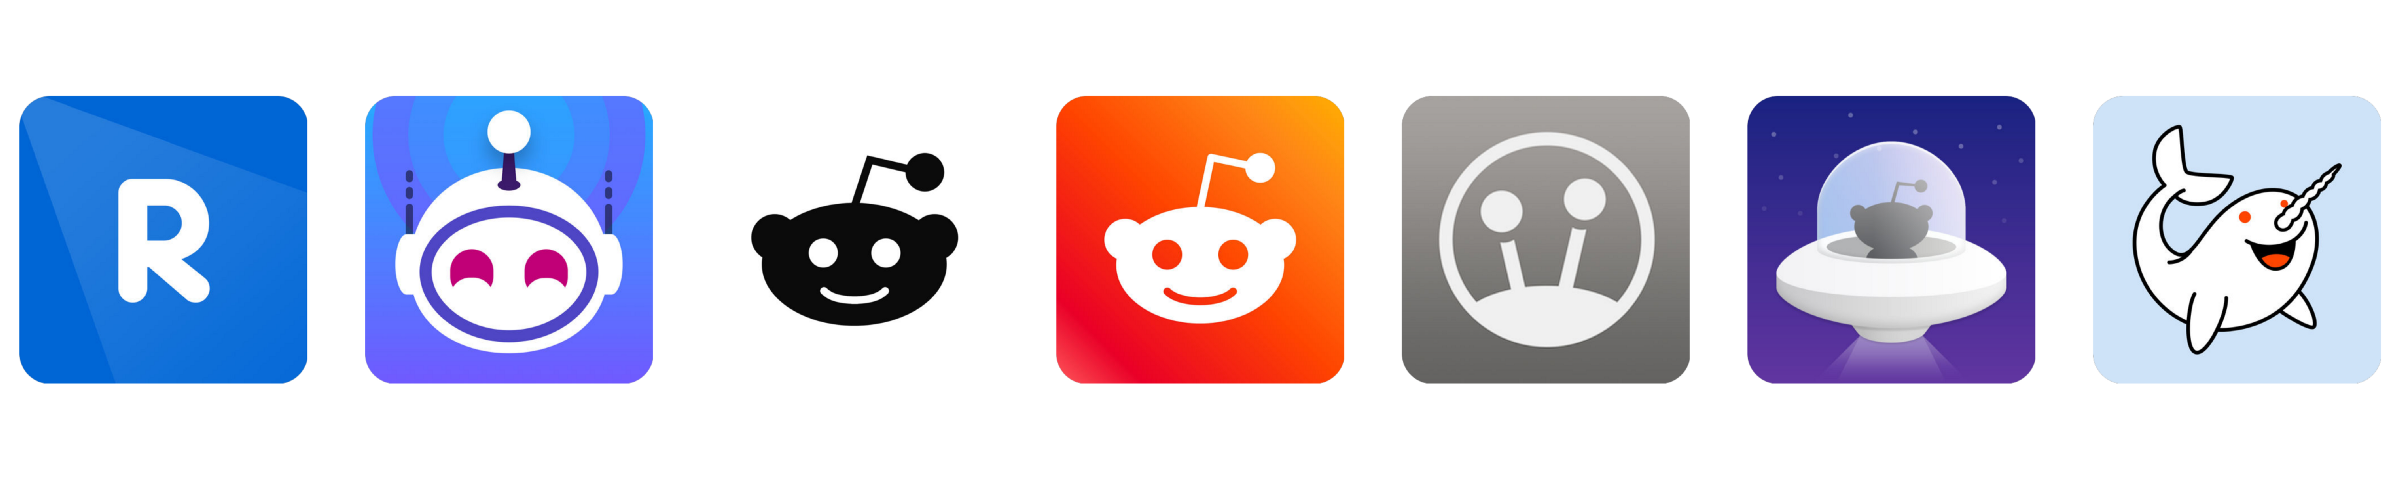 Reddit Clients for iOS - By